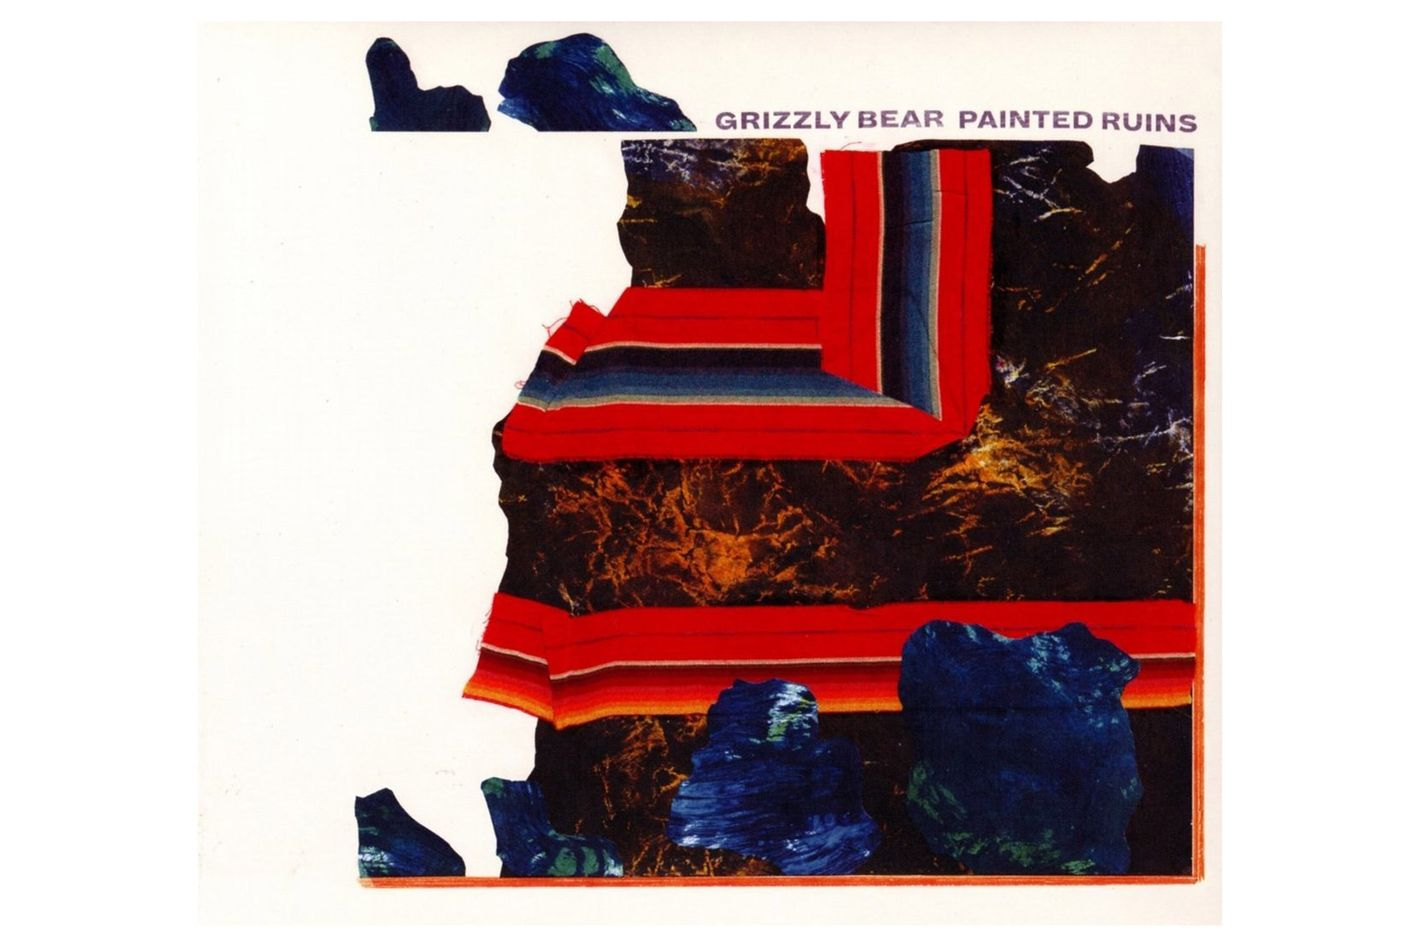 Painted Ruins by Grizzly Bear